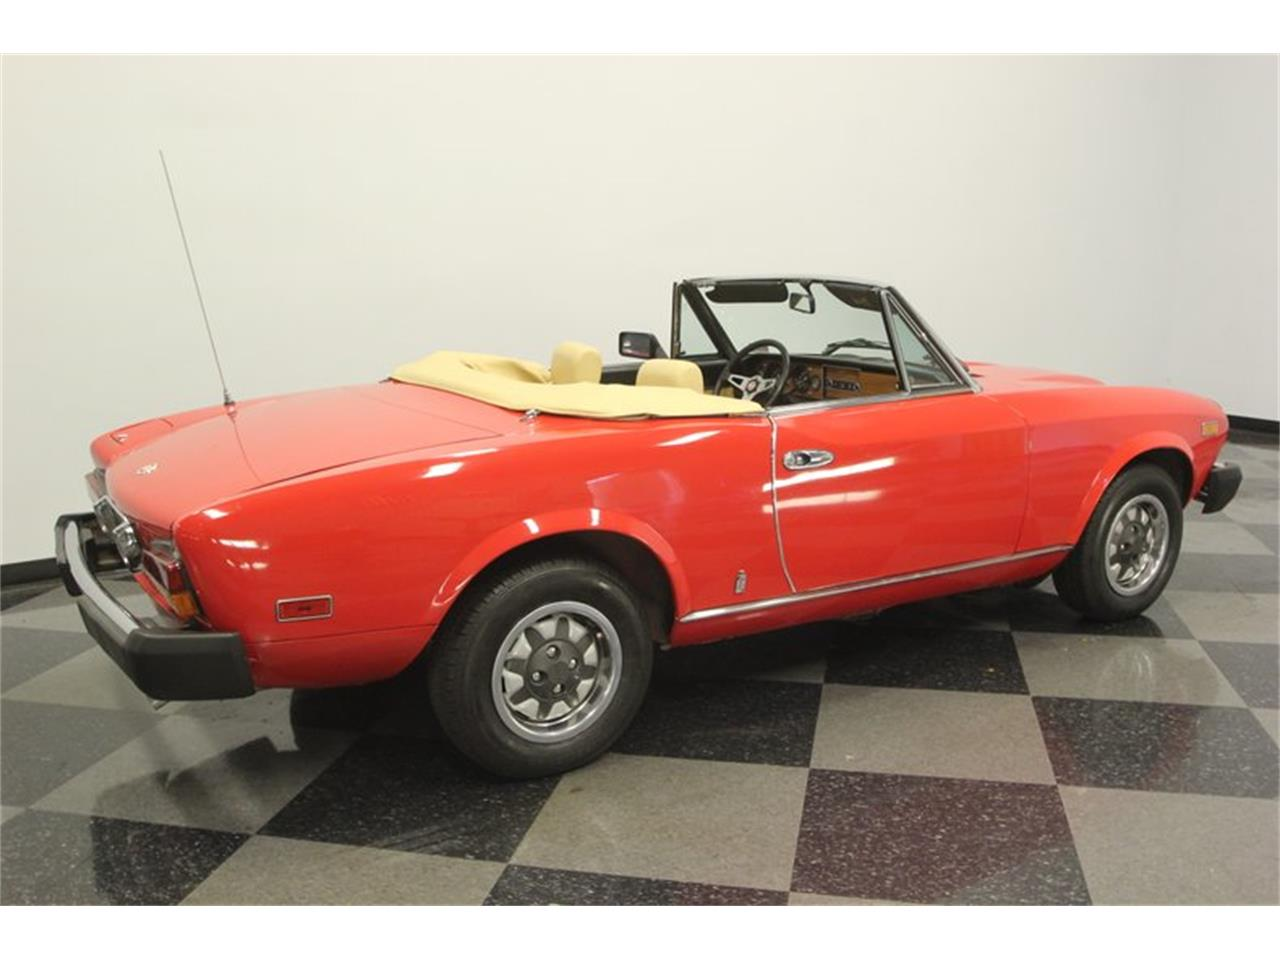 Large Picture of '80 Fiat Spider located in Lutz Florida - $21,995.00 Offered by Streetside Classics - Tampa - Q5HU